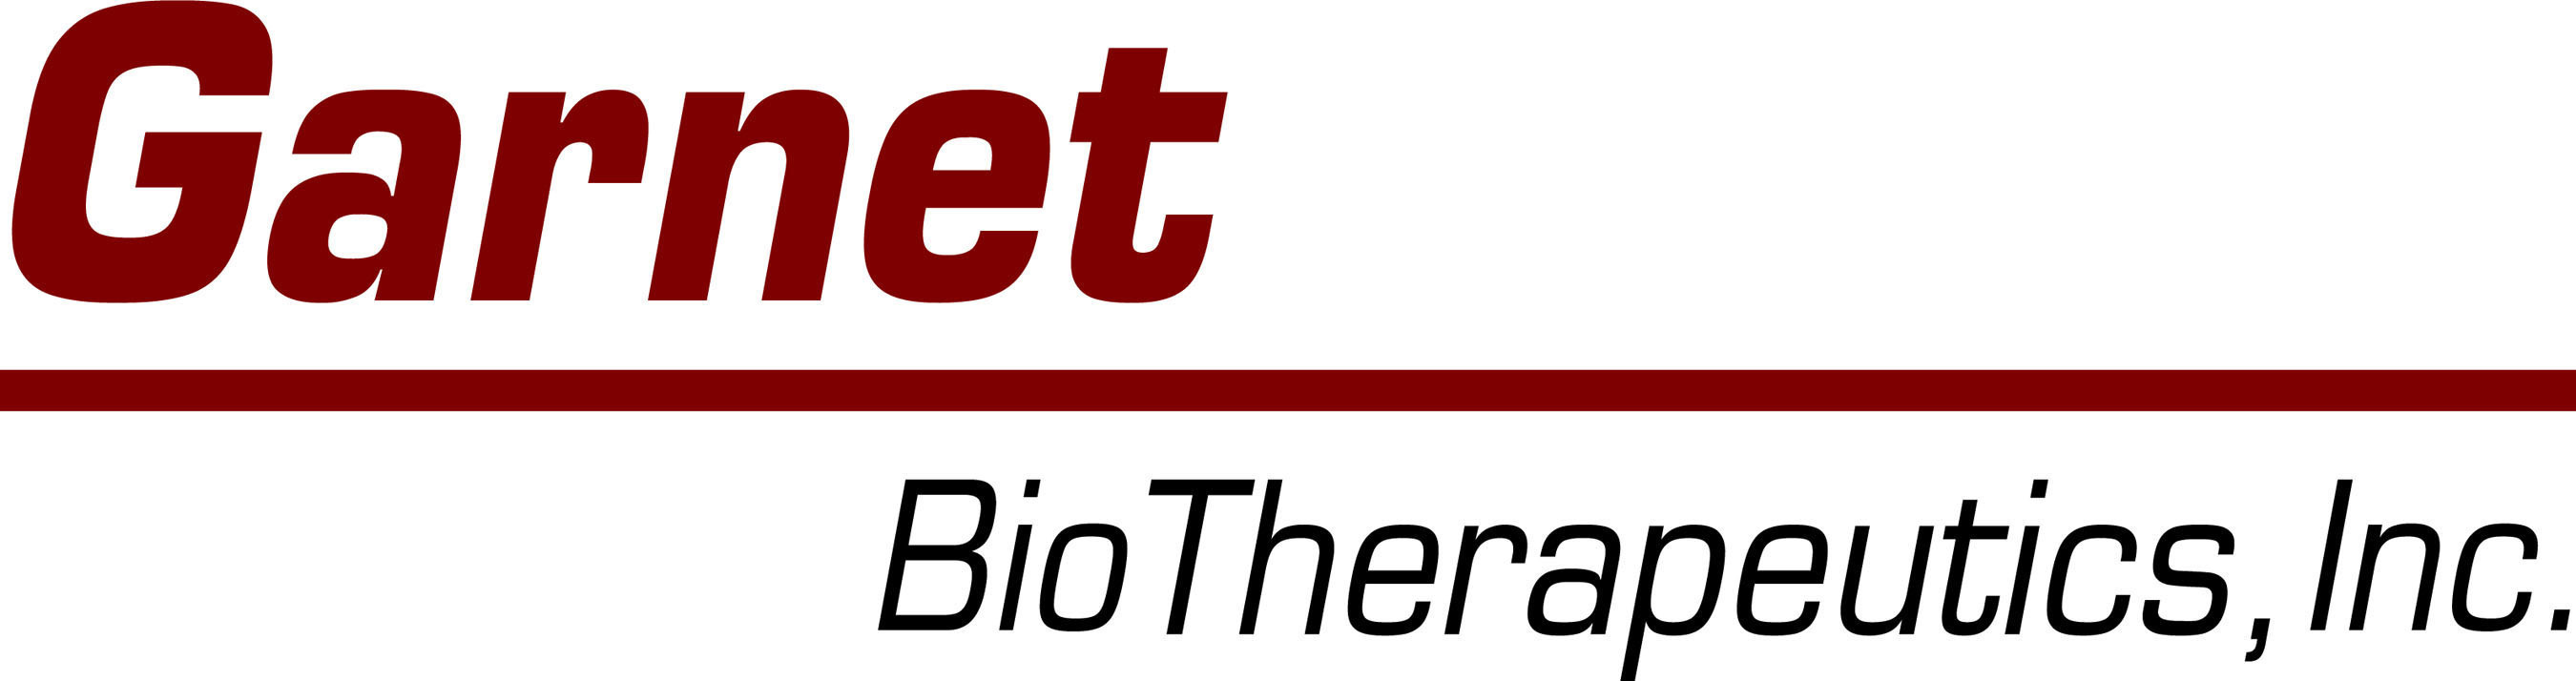 Garnet BioTherapeutics Files Amicus Brief to Support its